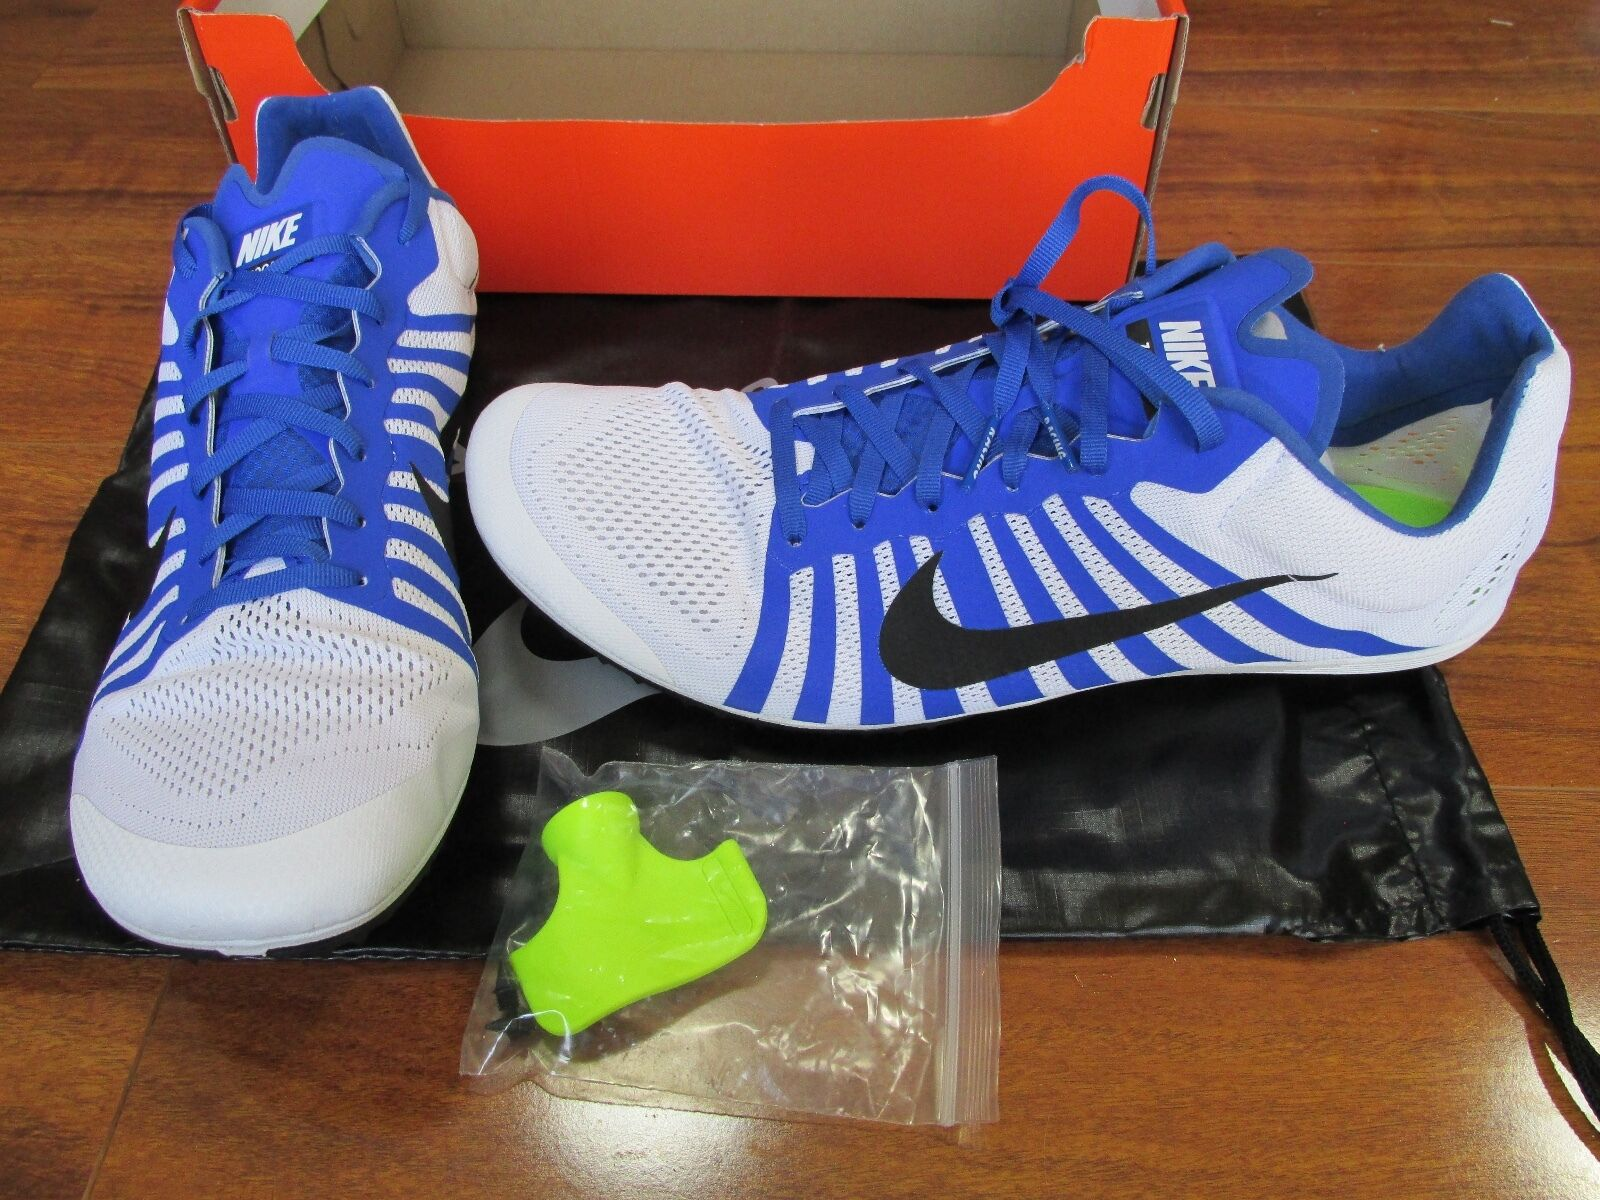 NEW NIKE Zoom D Track Shoes MENS 13 White Black Blue 819164 100 Price reduction